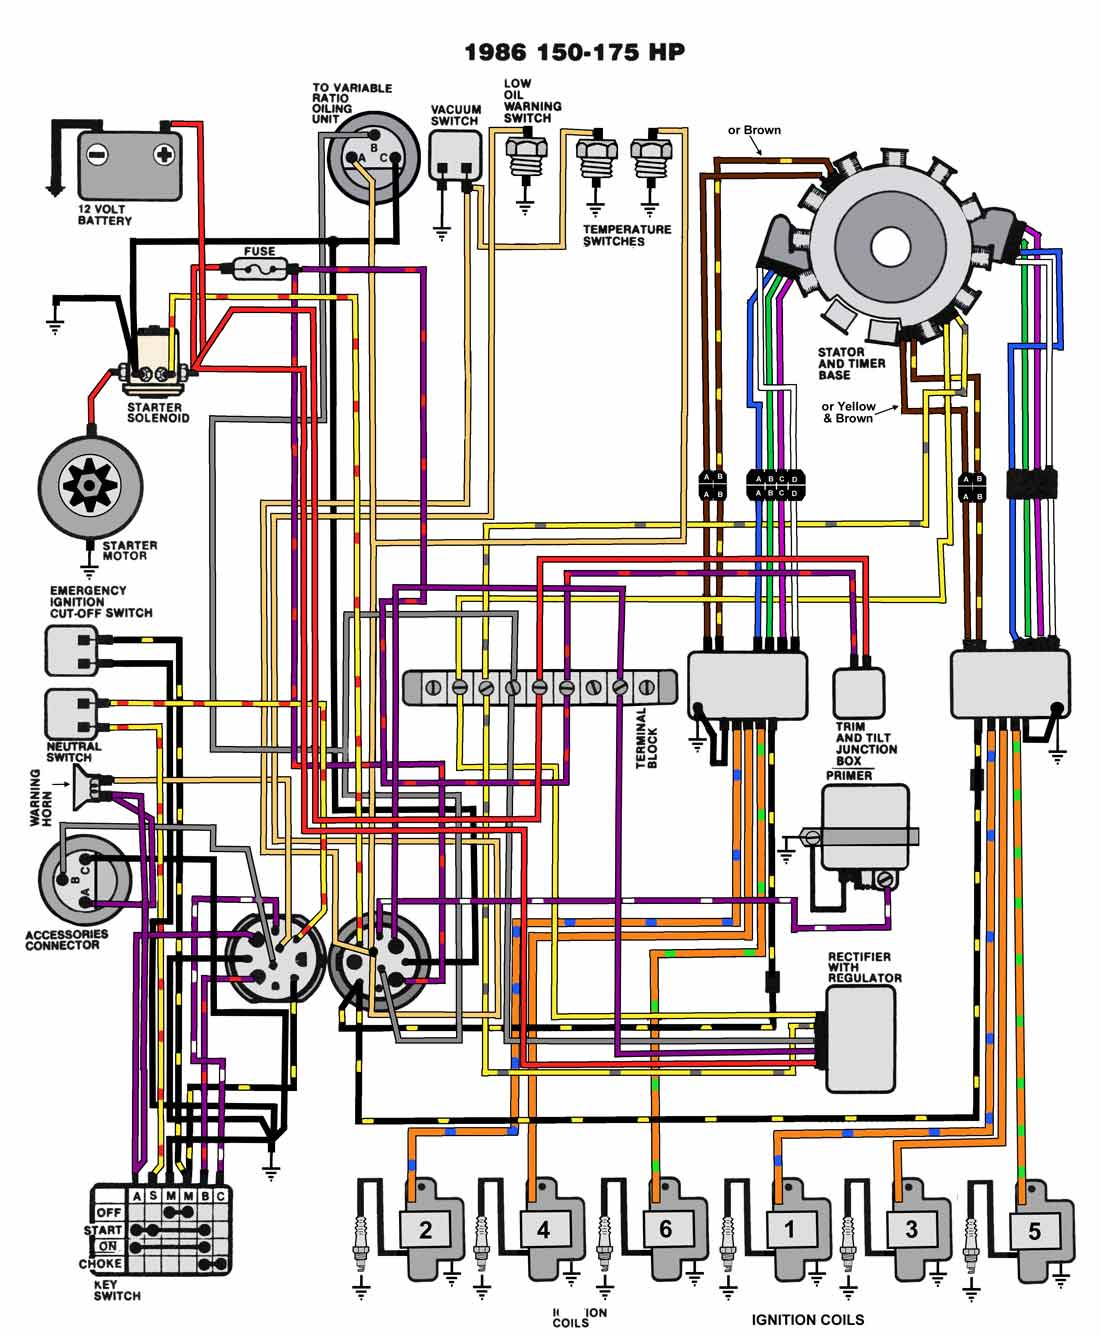 1986_150_175 maxrules wiring diagram wiring color standards \u2022 wiring diagrams 1964 johnson outboard 40 hp wiring diagram at bayanpartner.co